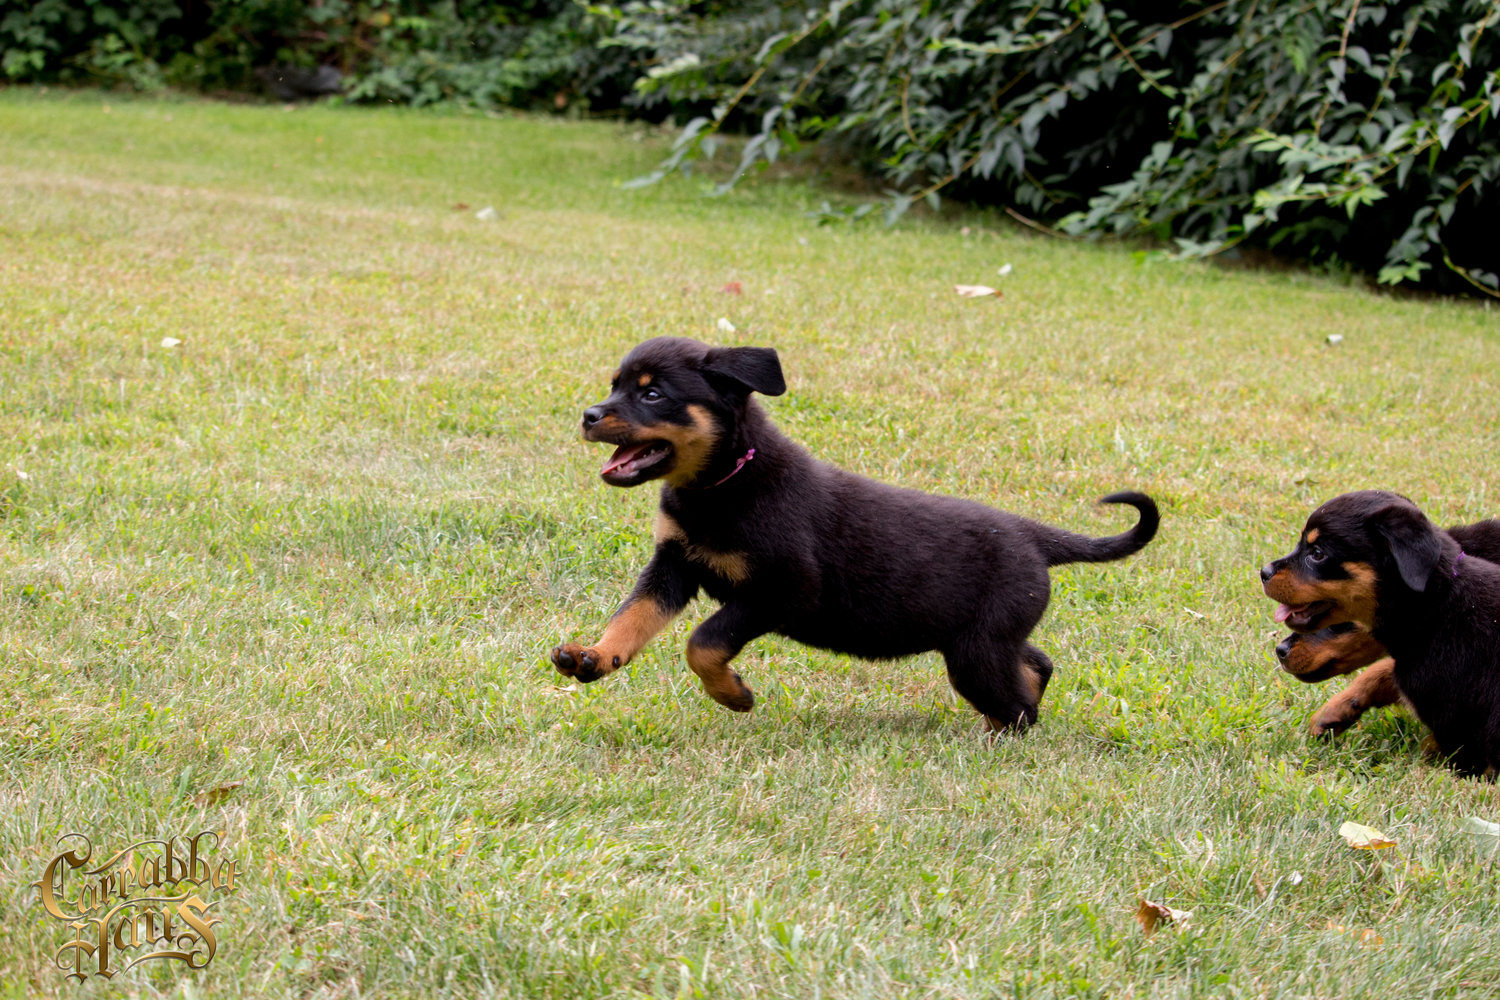 Carrabba Haus - Rottweiler breeder in New York. Rottweiler puppies for sale in Carrabba Haus kennel